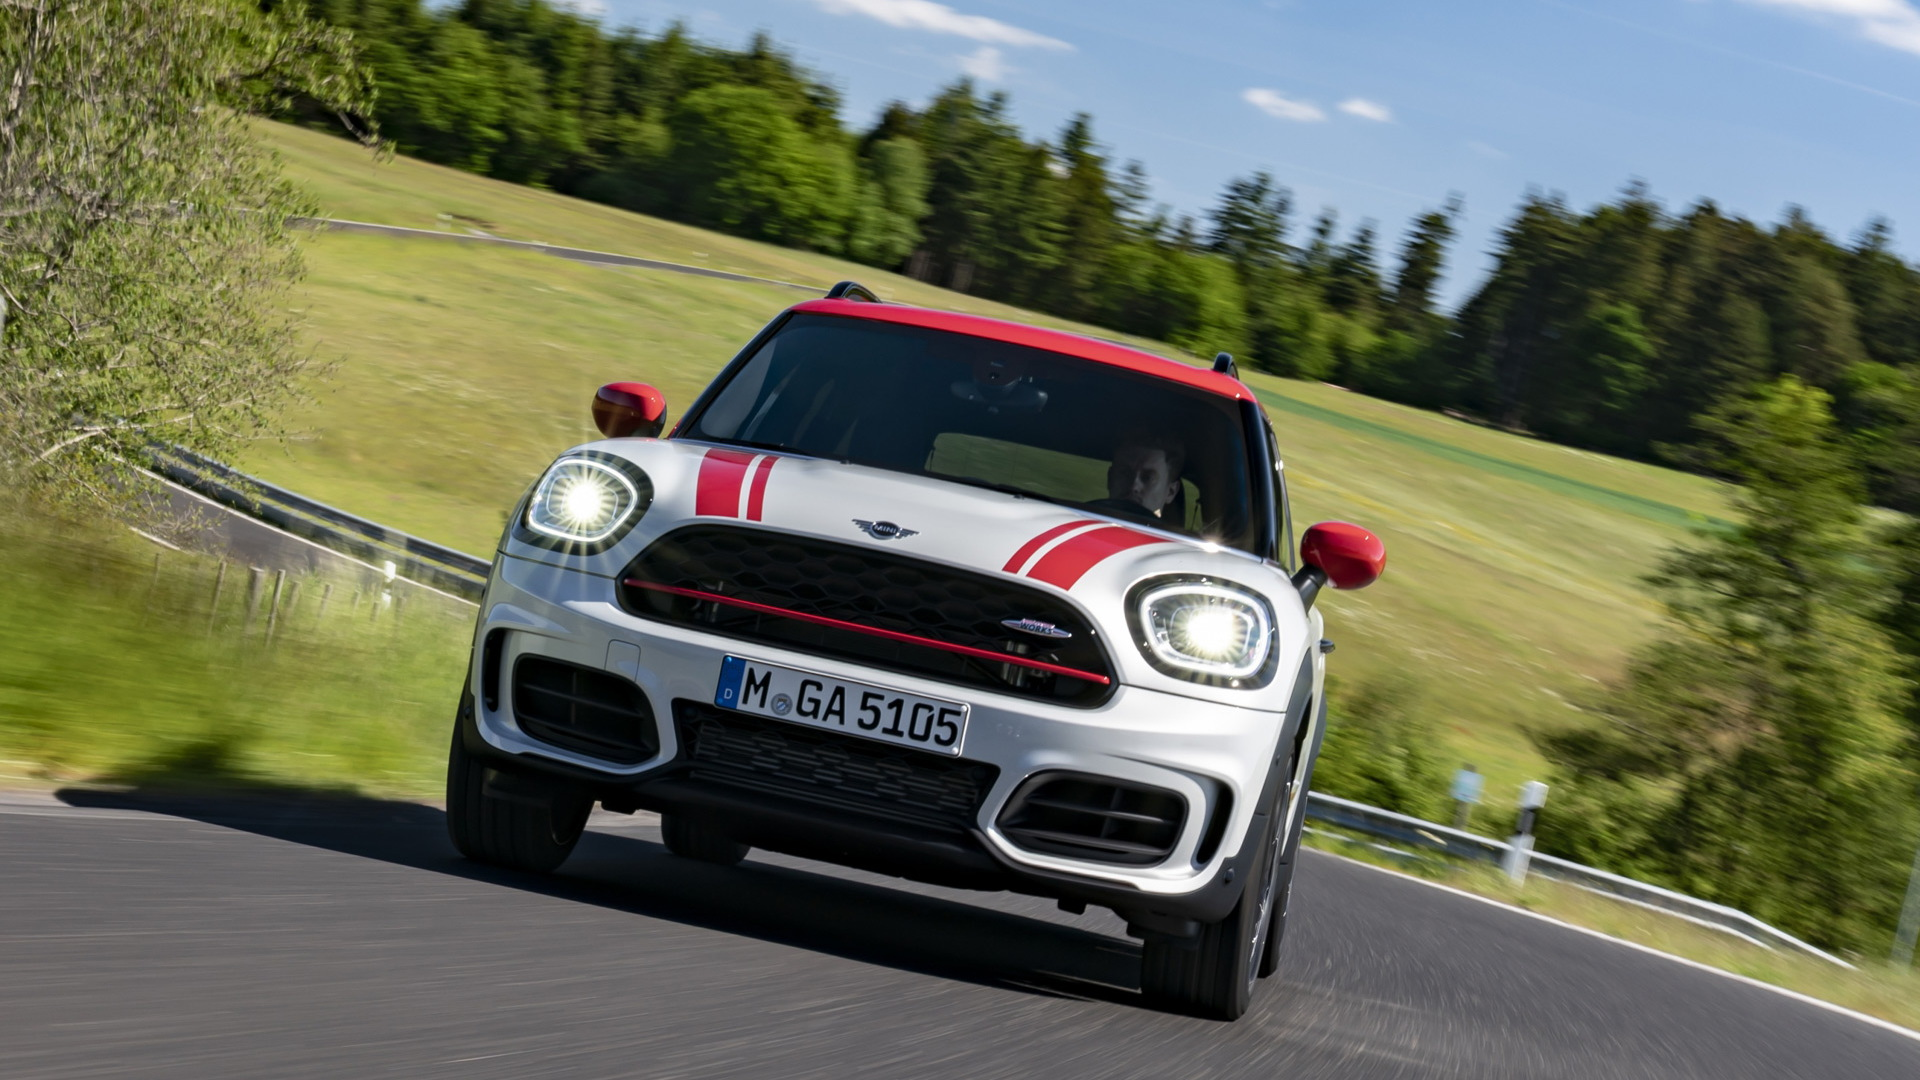 Mini John Cooper Works Countryman arrives with revised styling